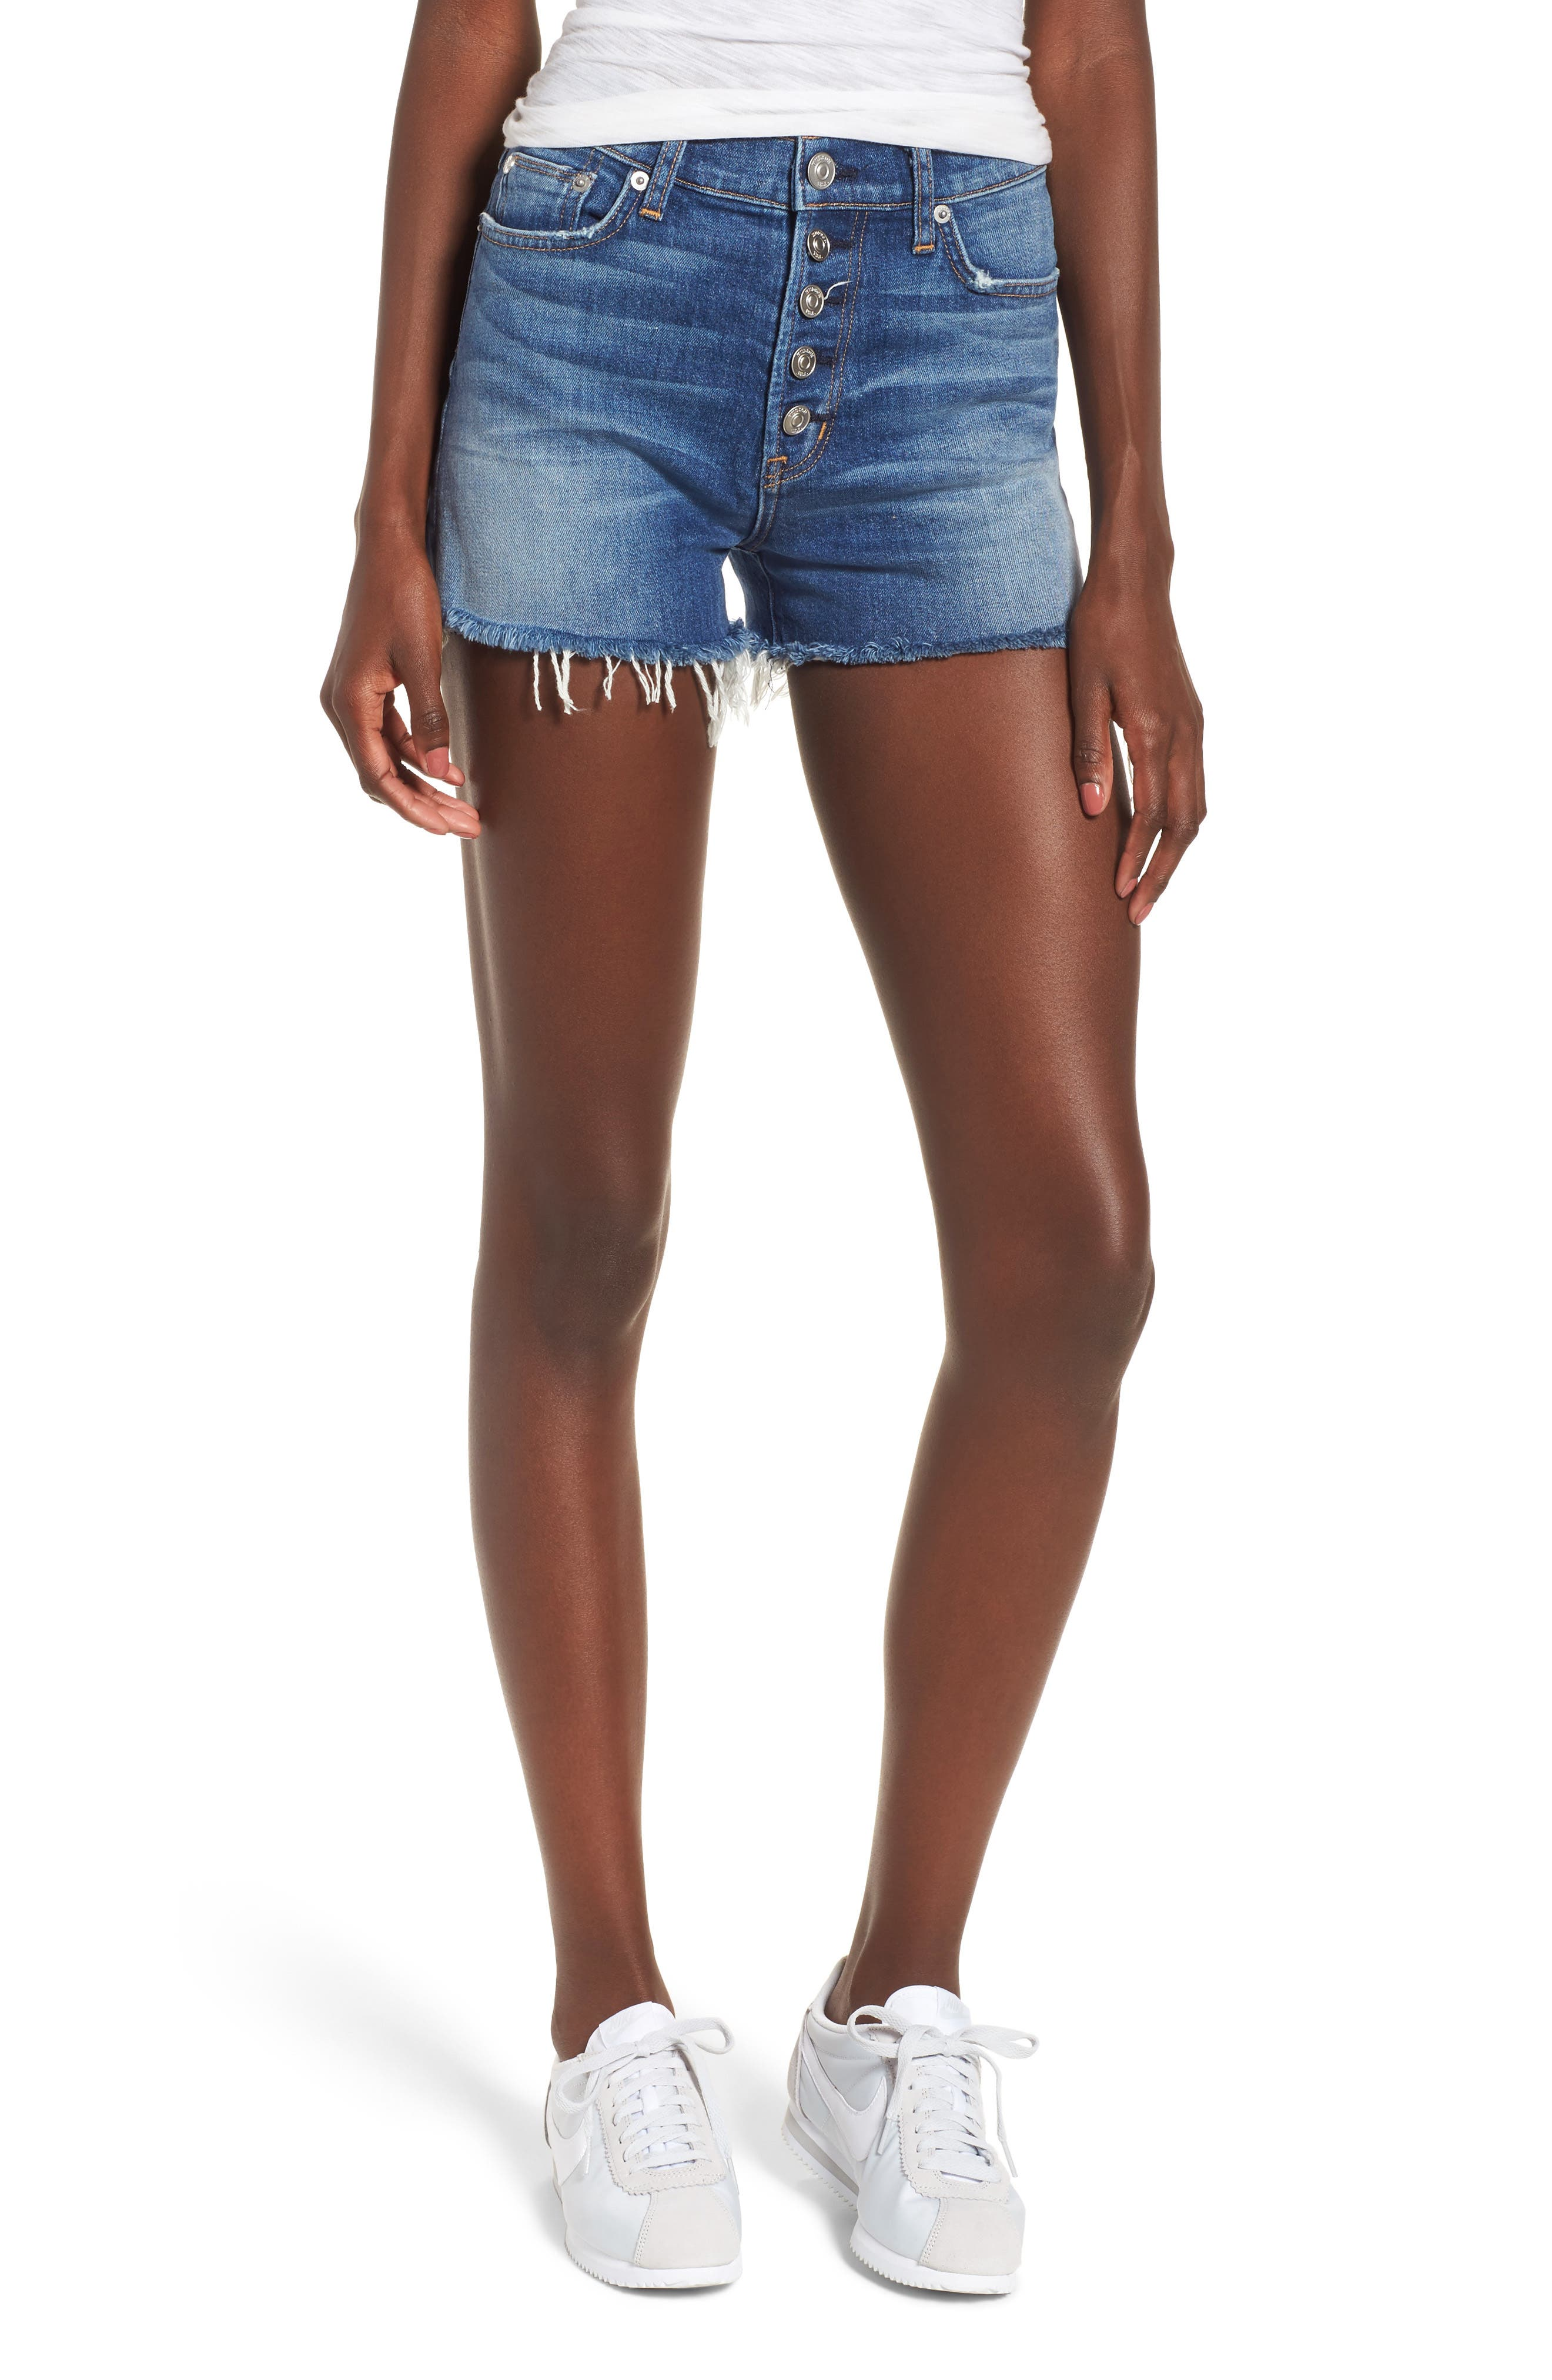 Zoeey High Waist Cutoff Denim Shorts,                             Main thumbnail 1, color,                             420